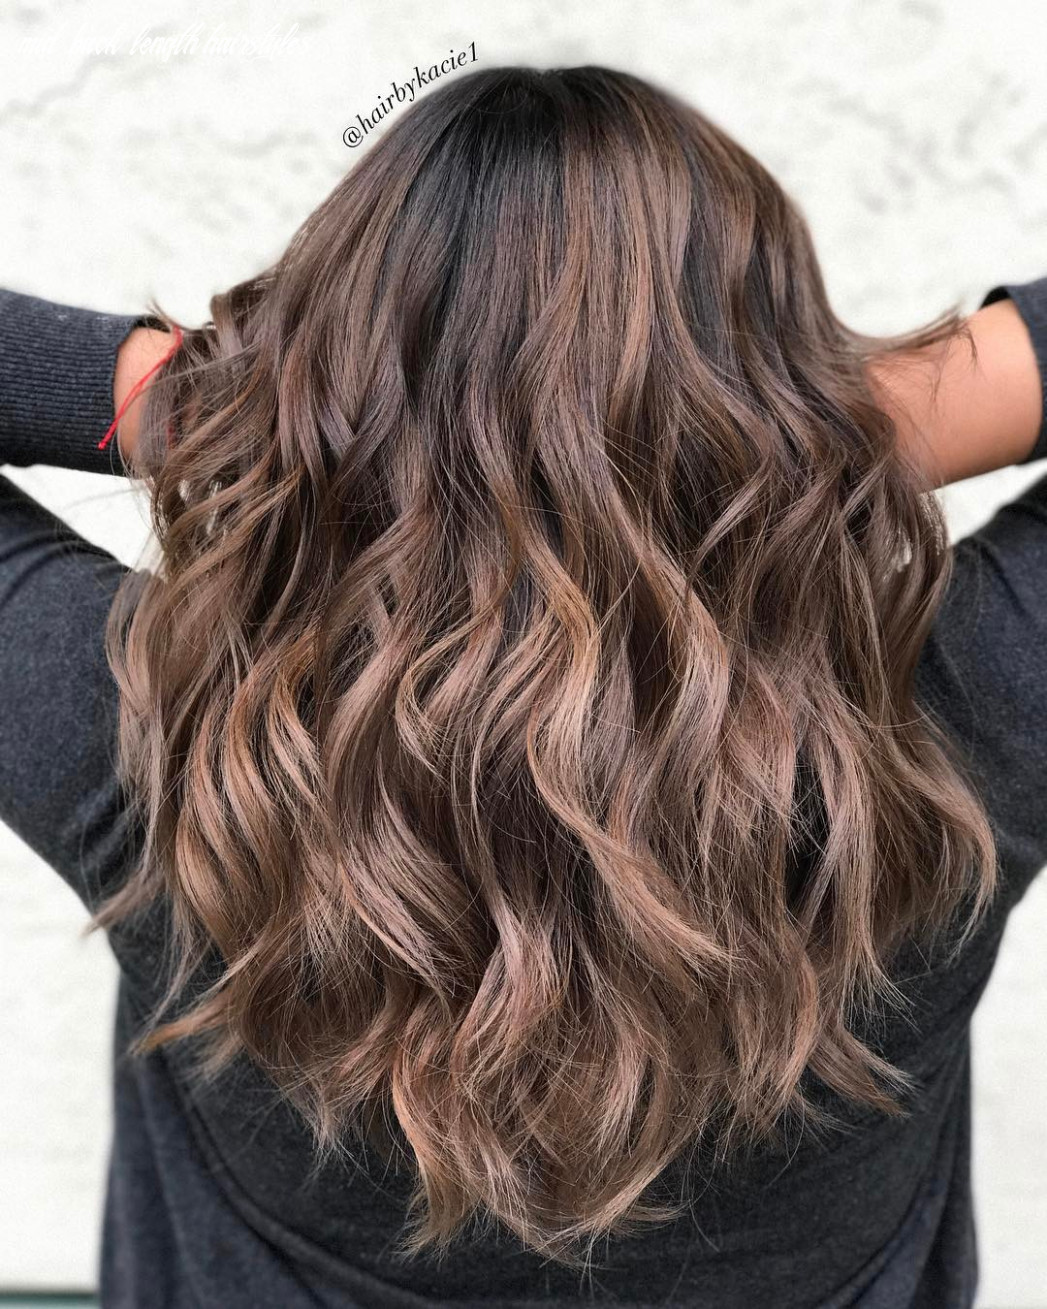 9 NEW Long Hairstyles with Layers for 9 - Hair Adviser